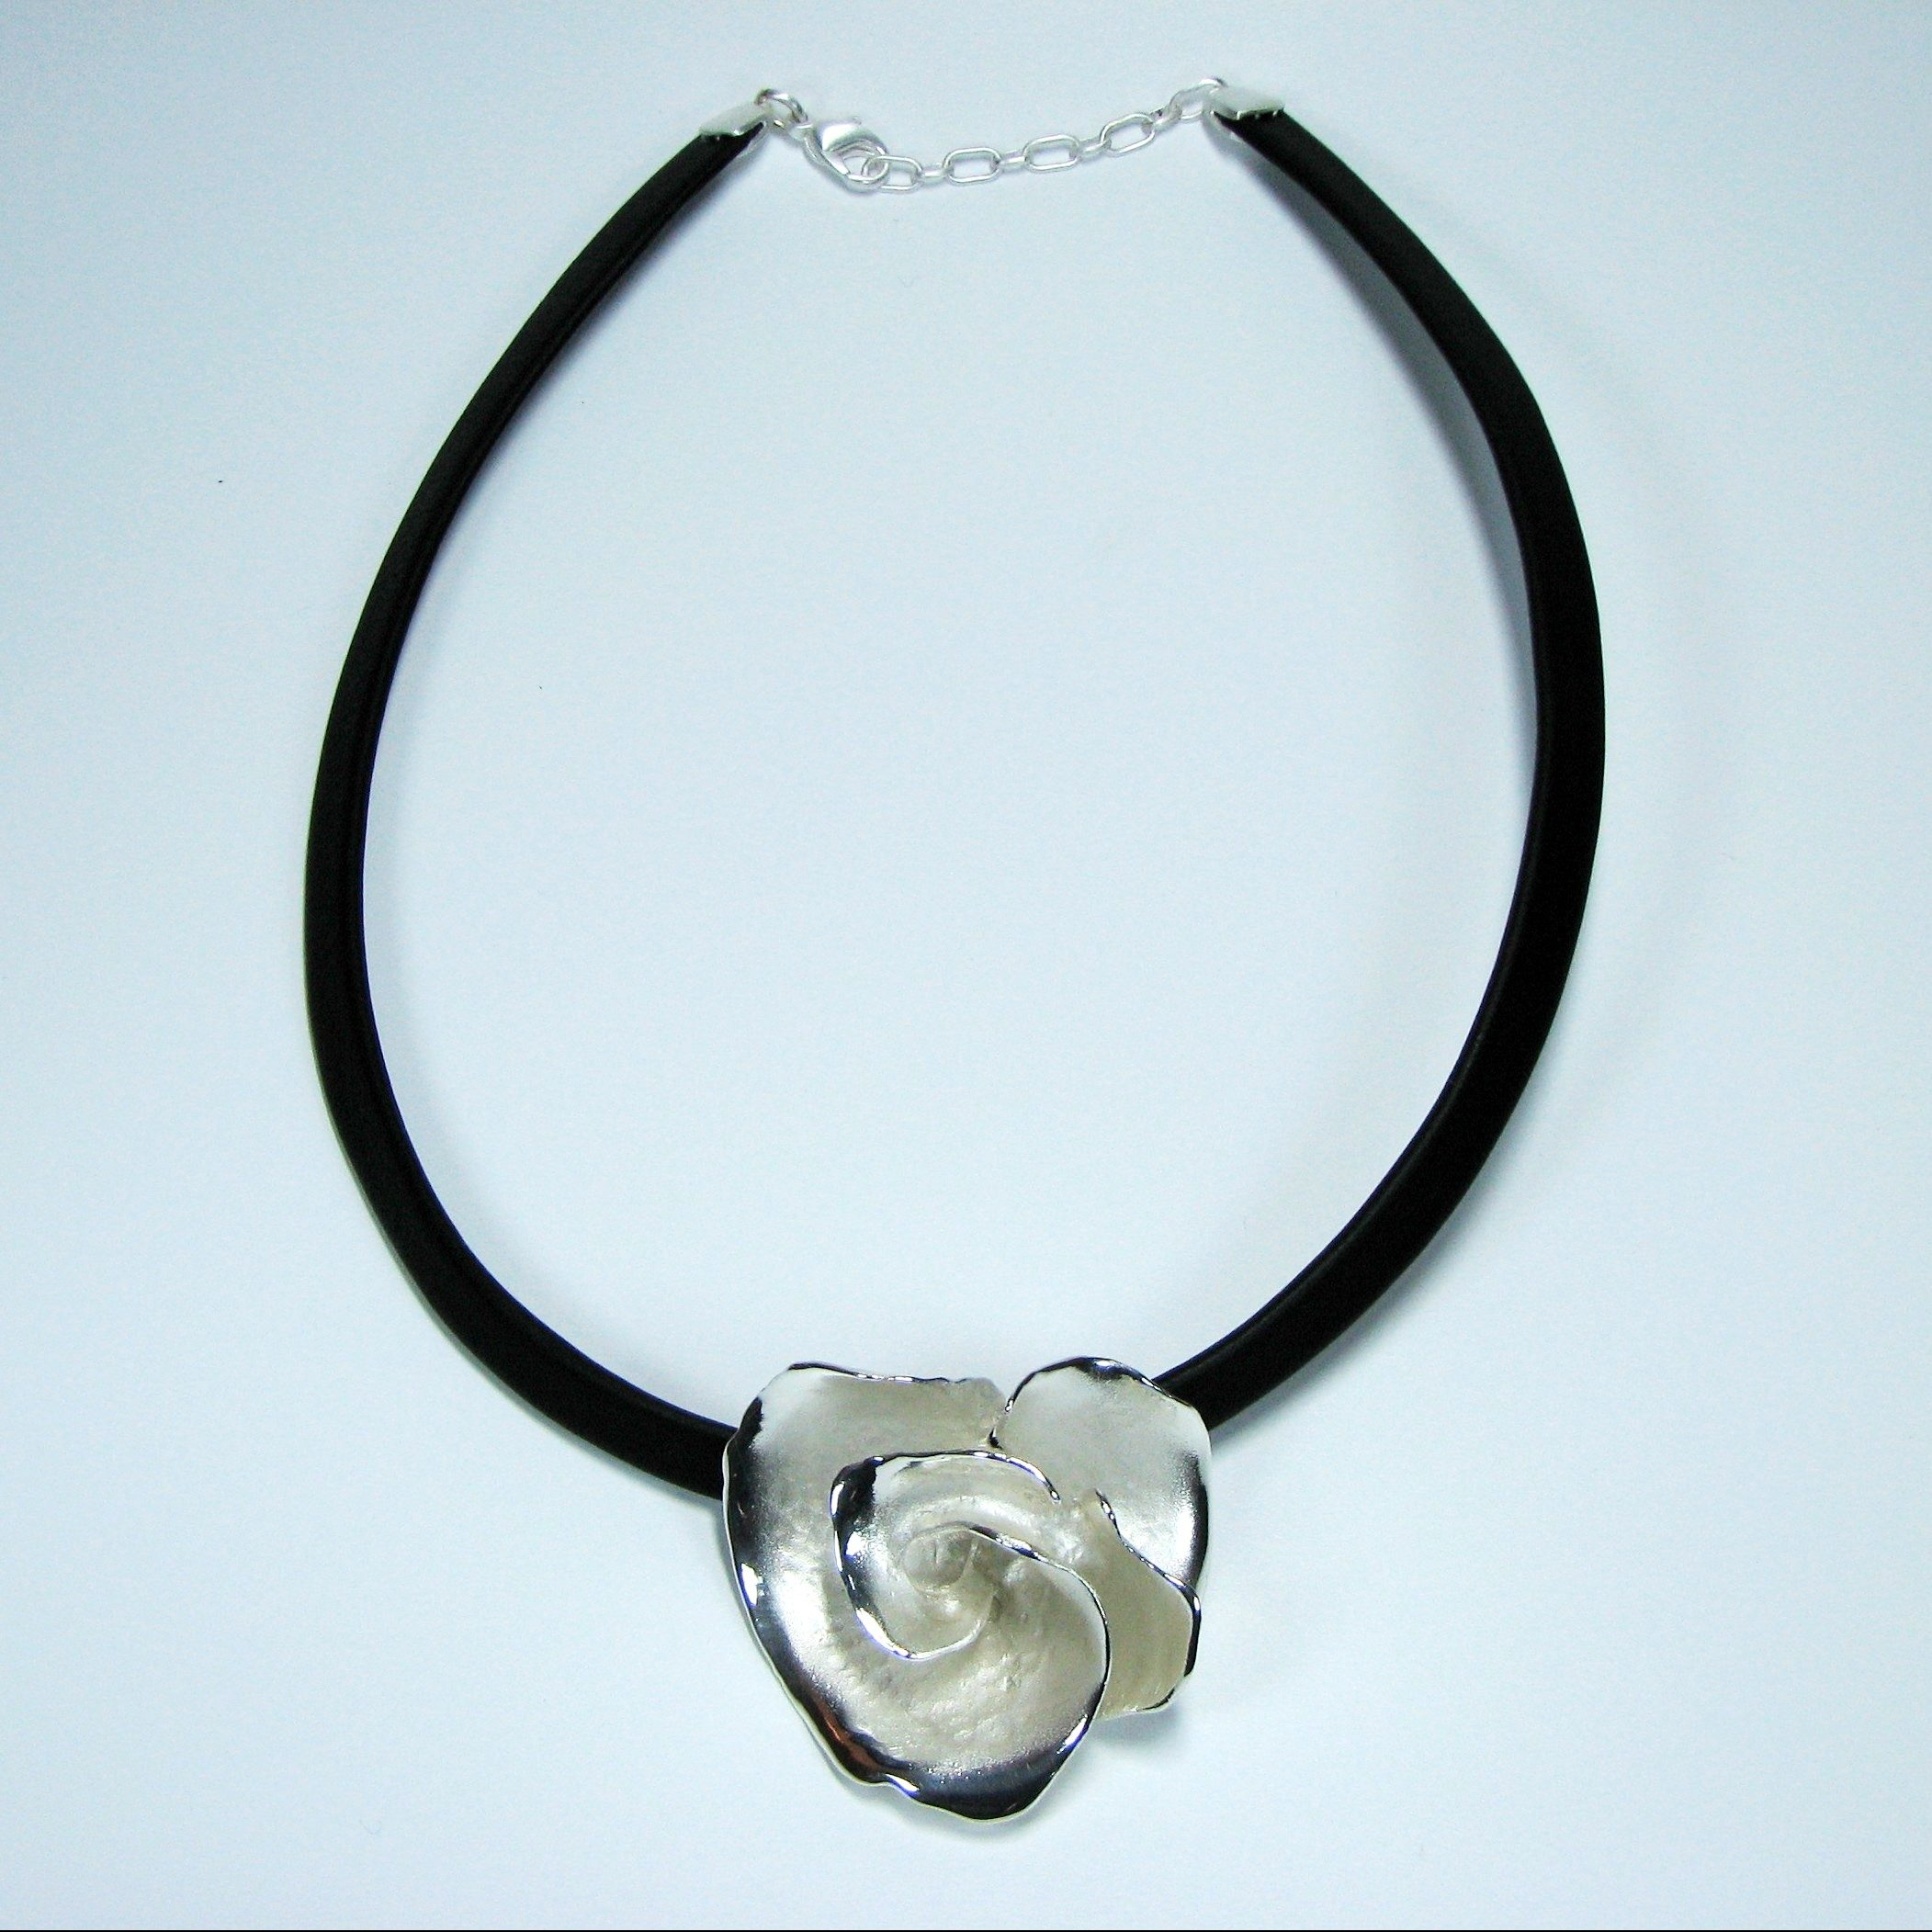 Charisma Large Silver Flower Pendant On Leather